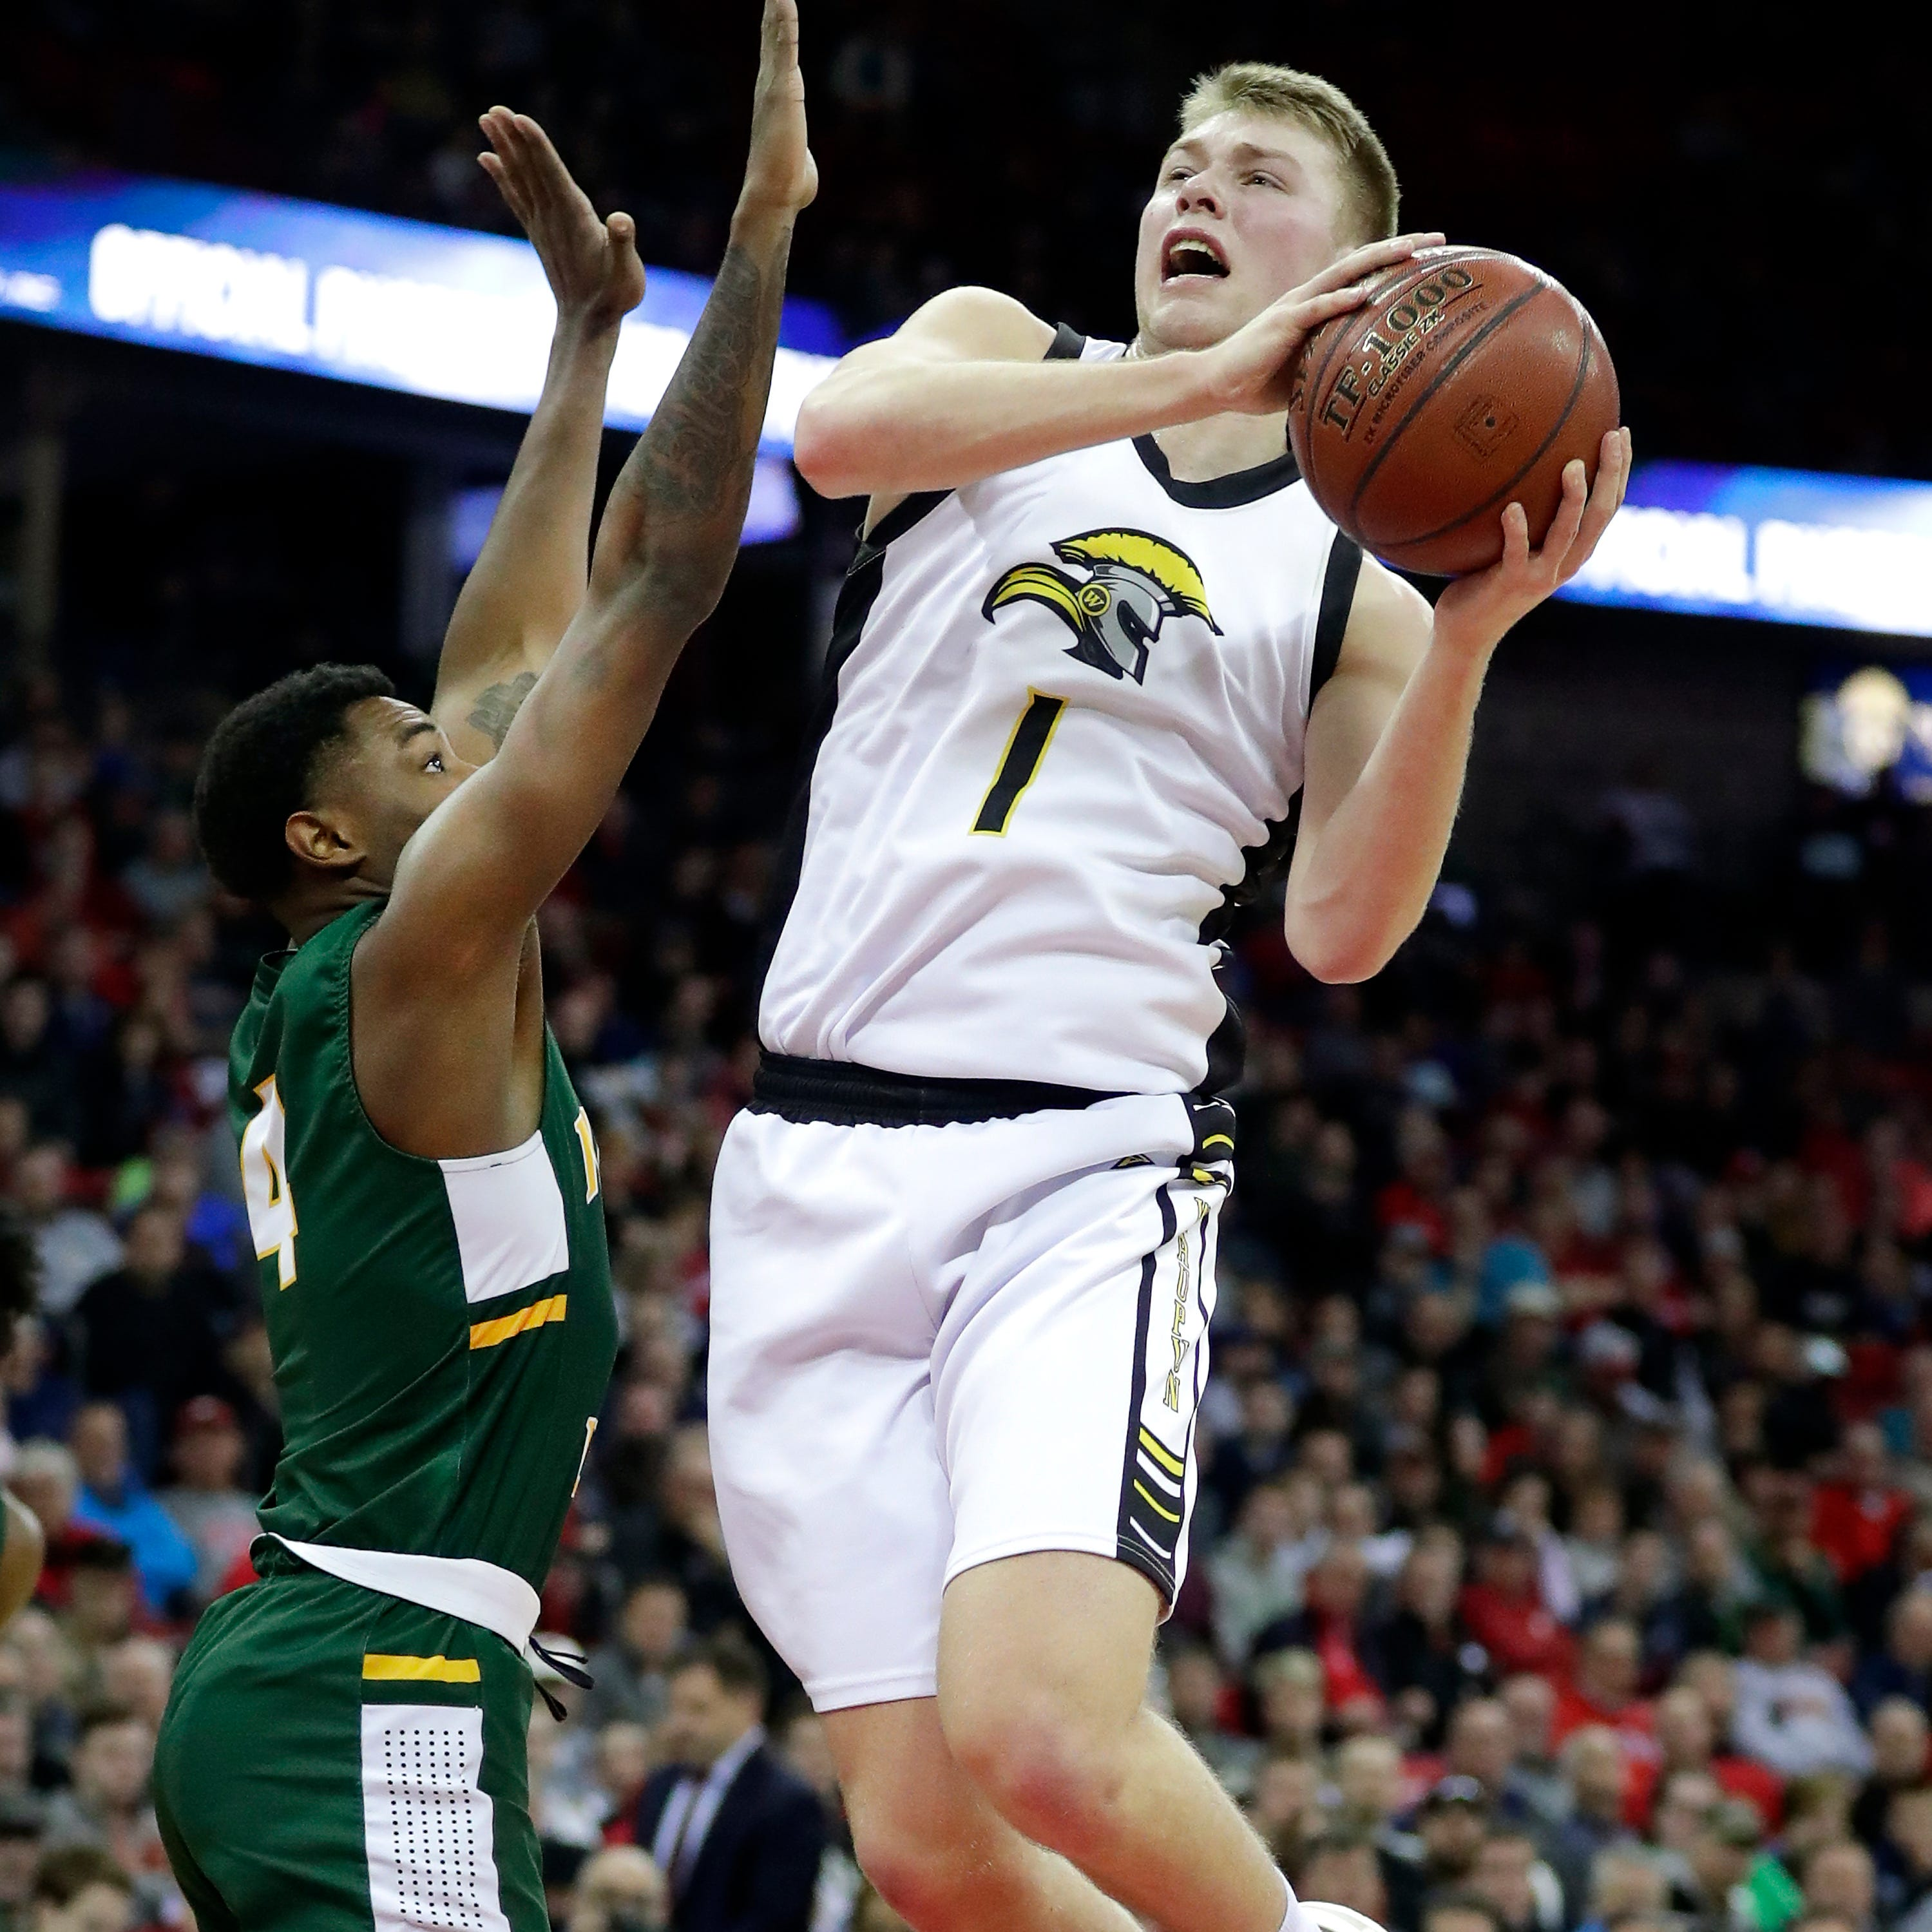 Recruiting: Waupun's Marcus Domask commits to Southern Illinois